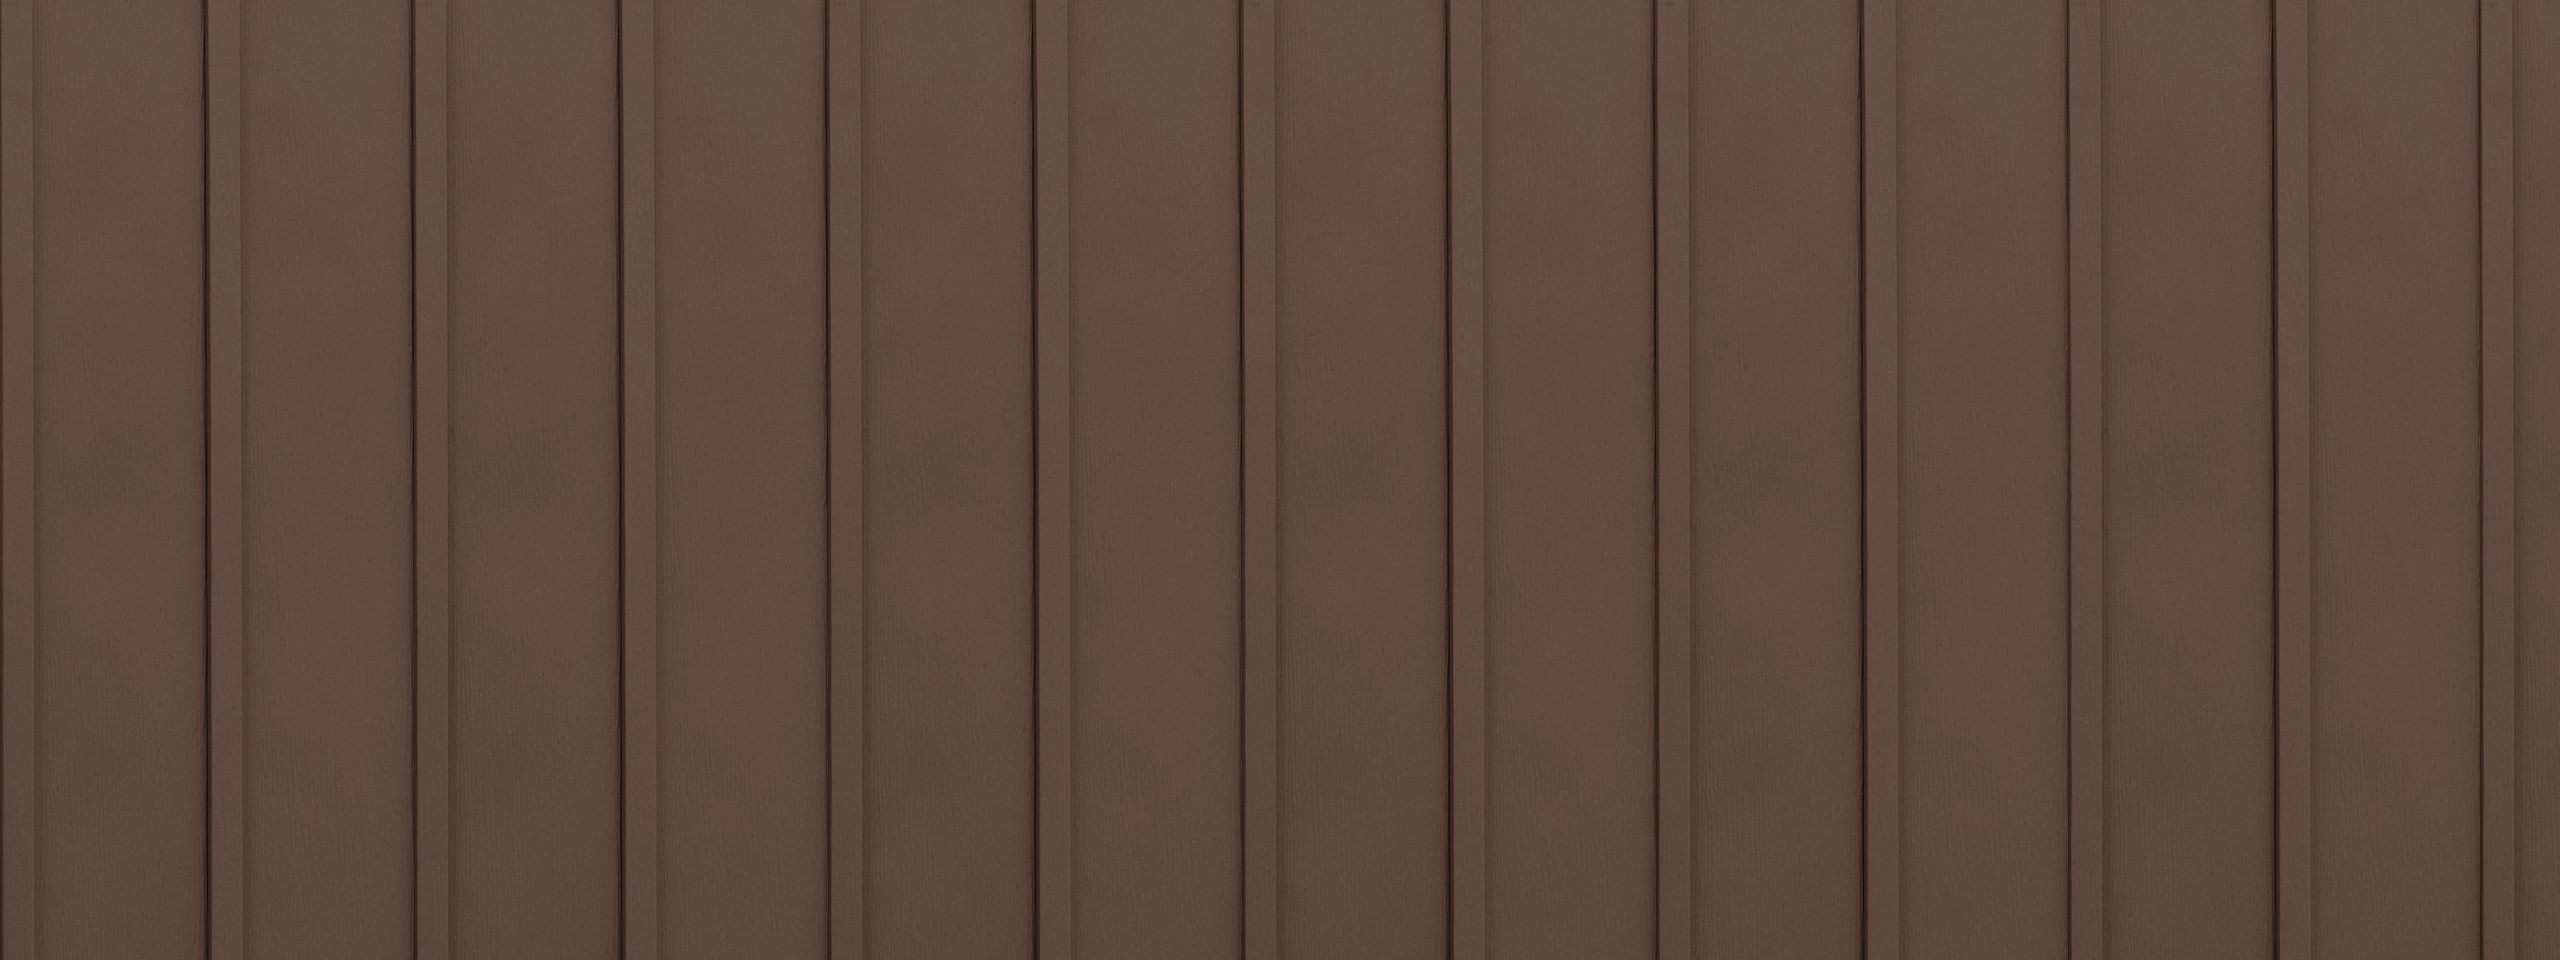 Entex vertical mahogany board and batten steel siding